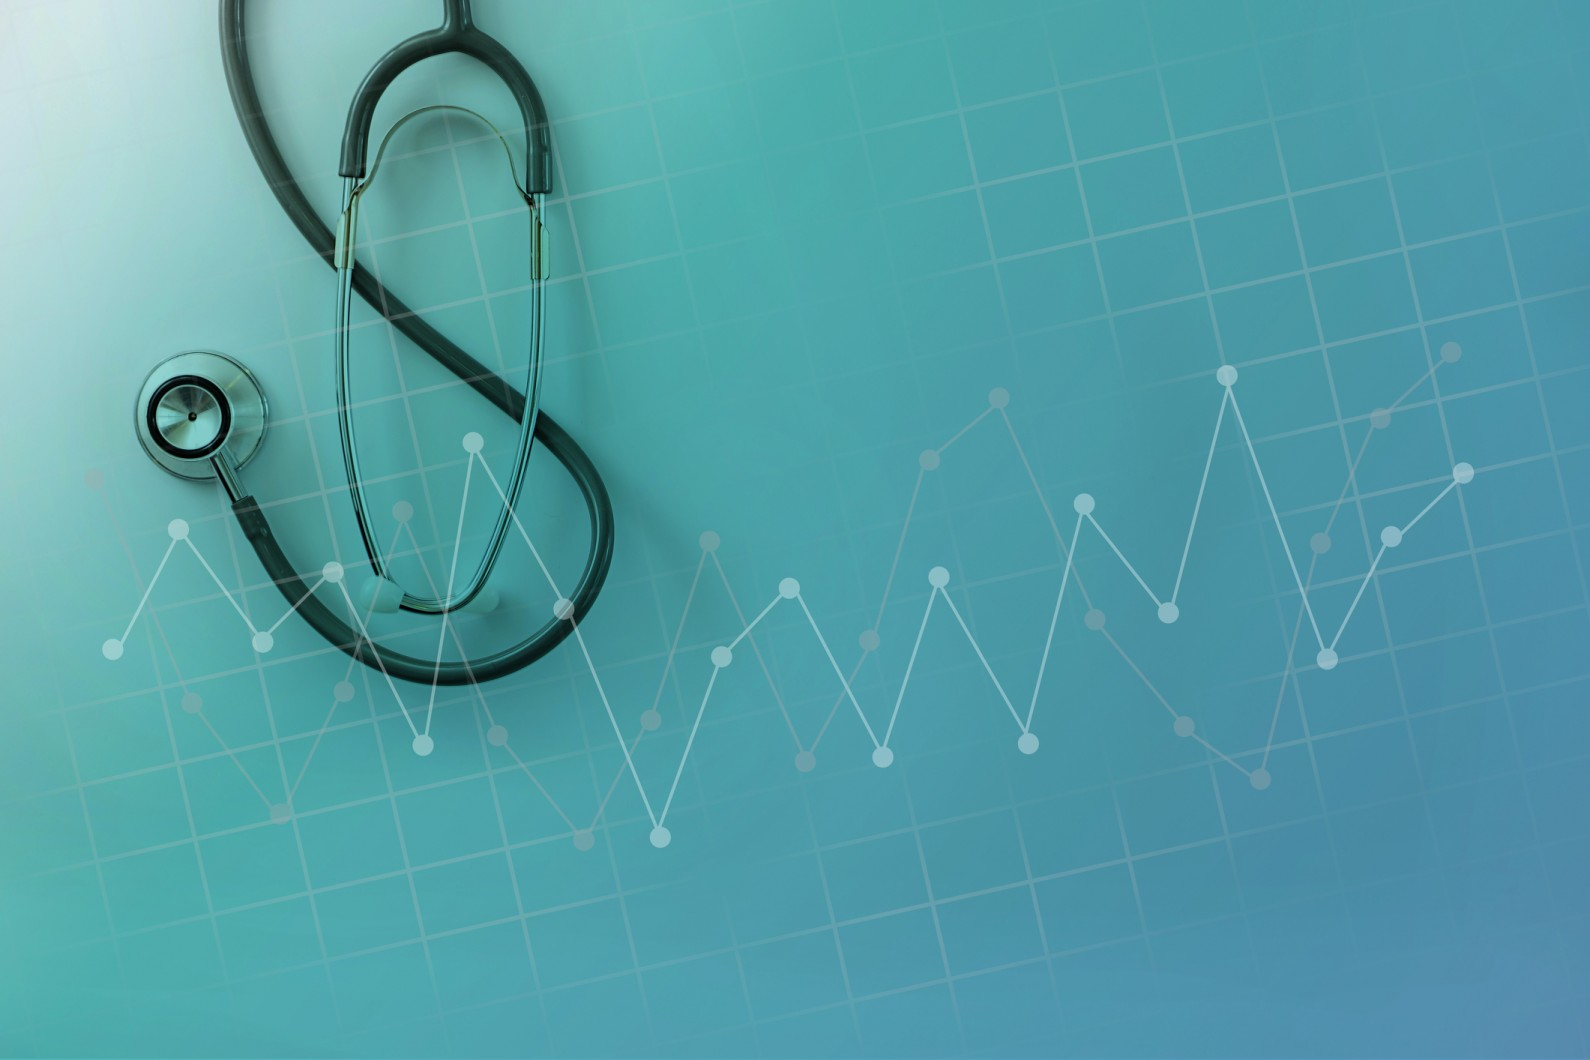 Stethoscope and chart